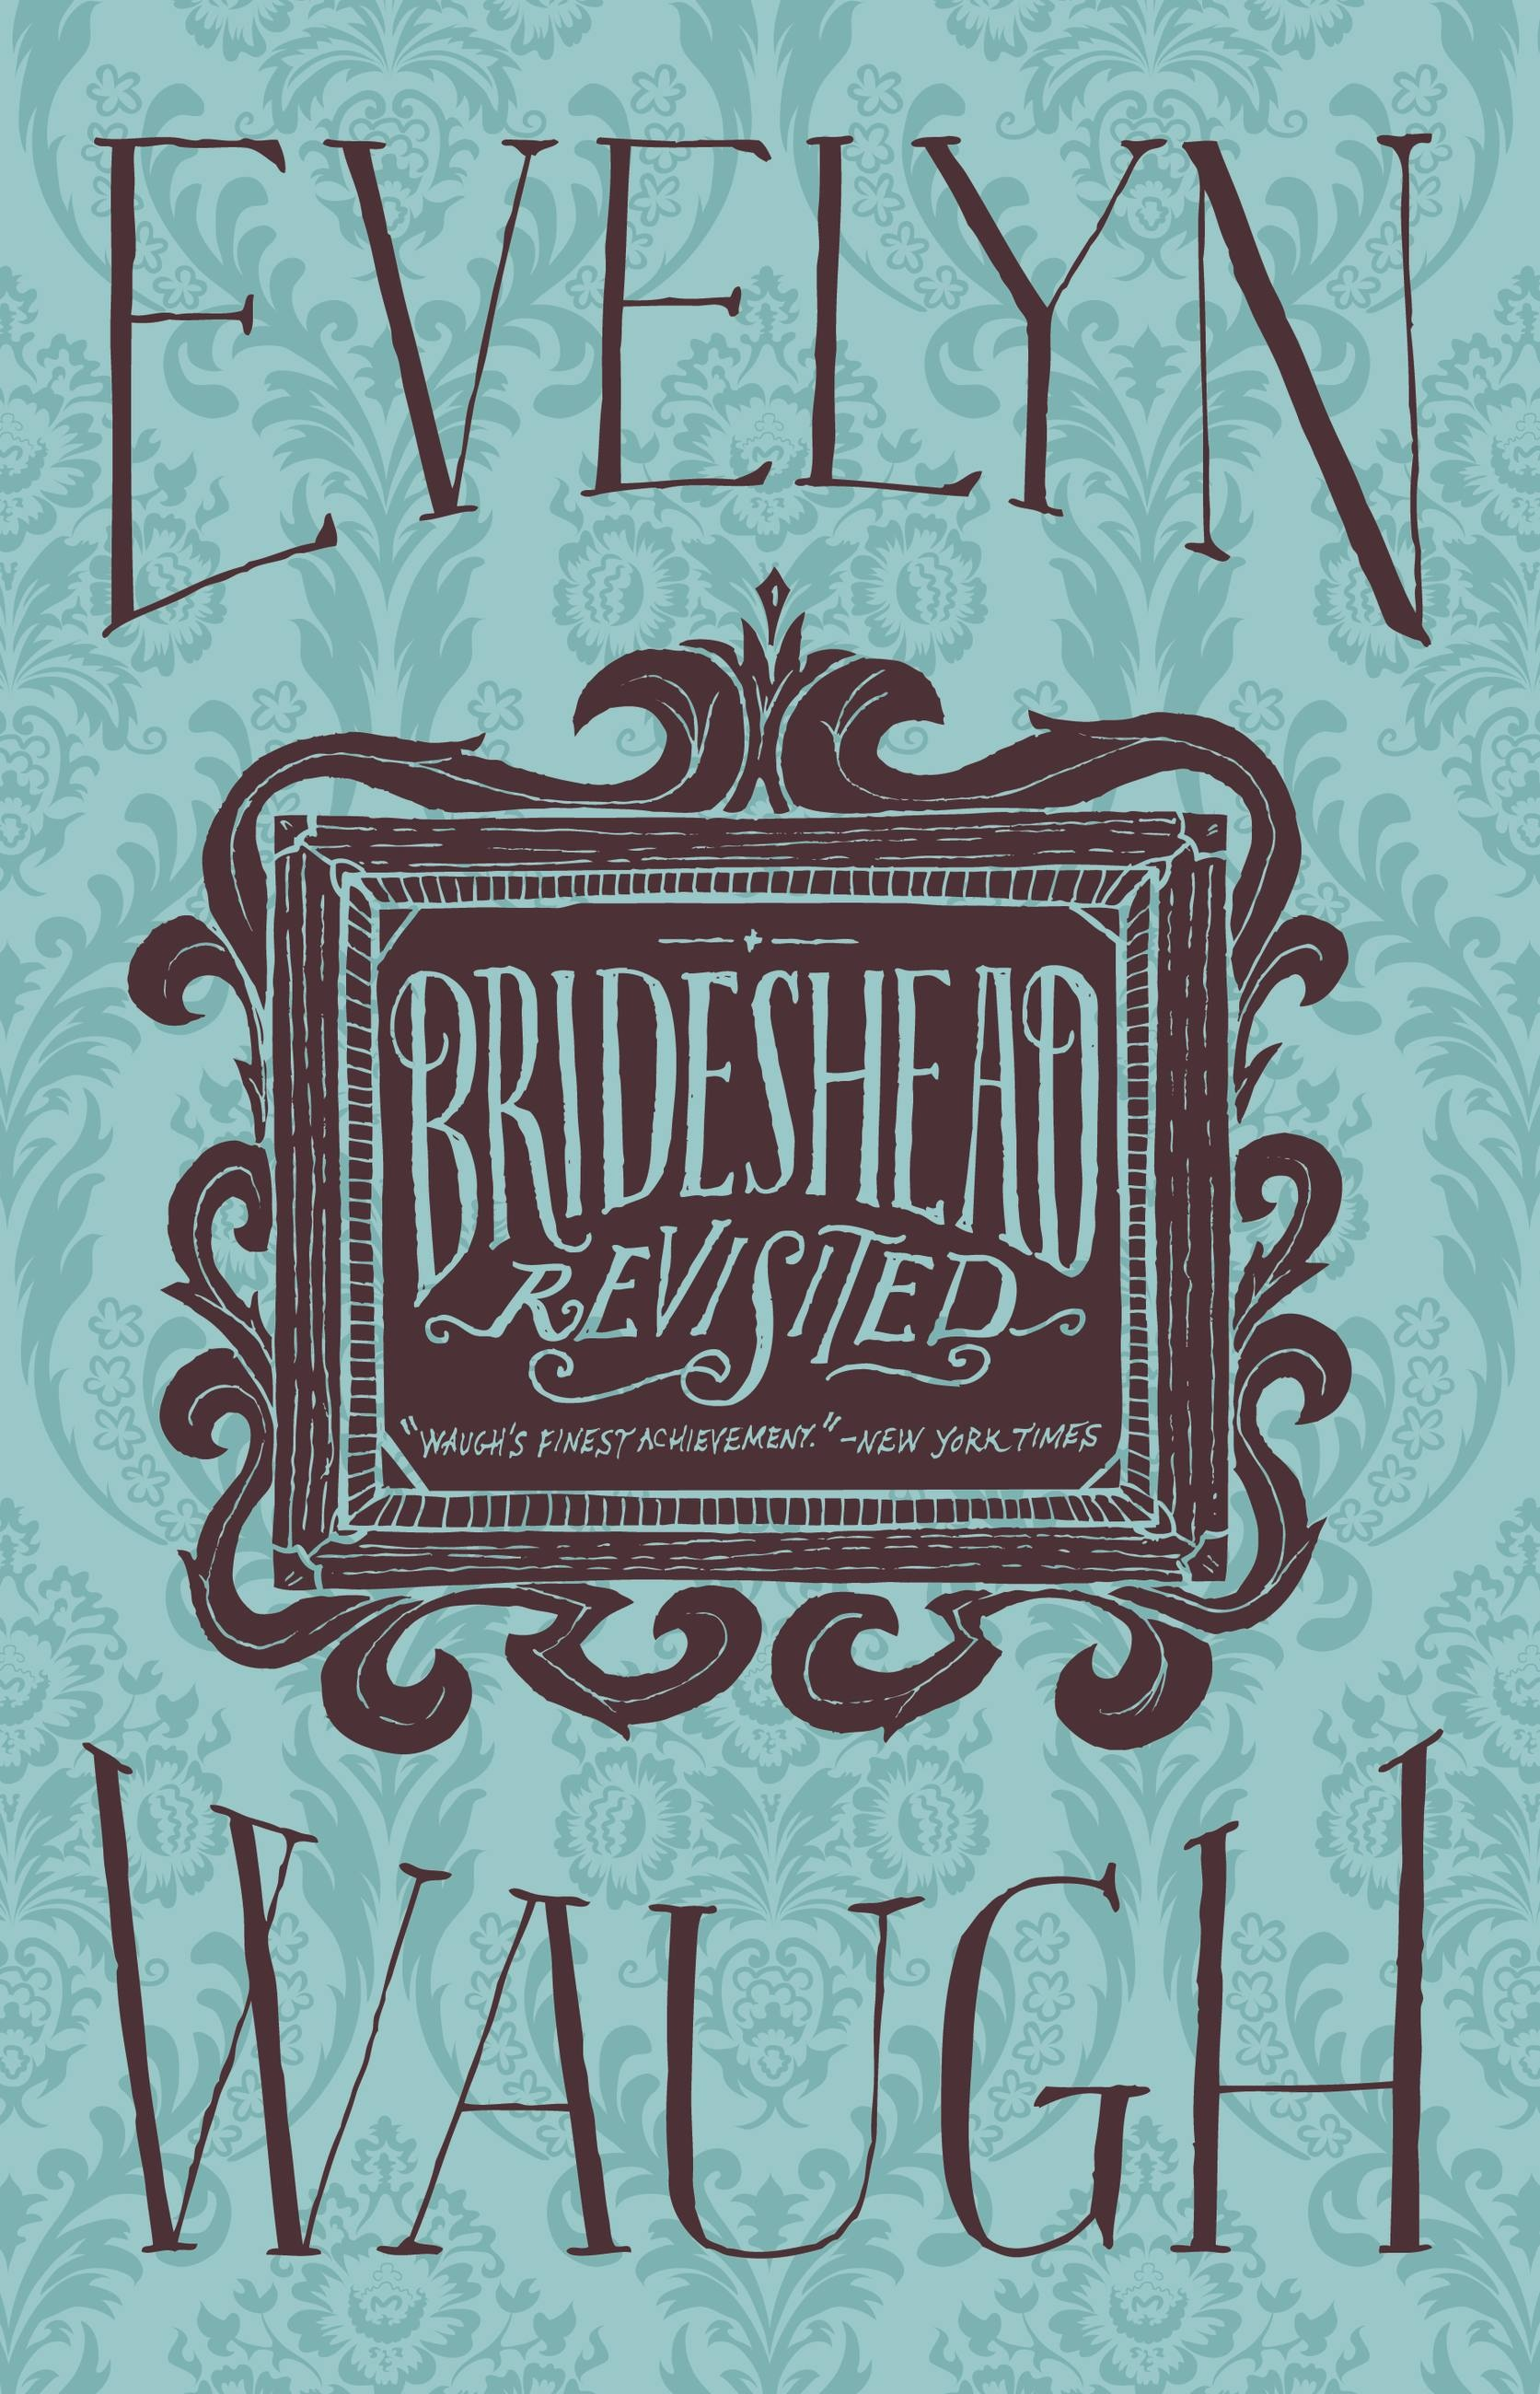 Brideshead Revisted by evelyn waugh.jpg